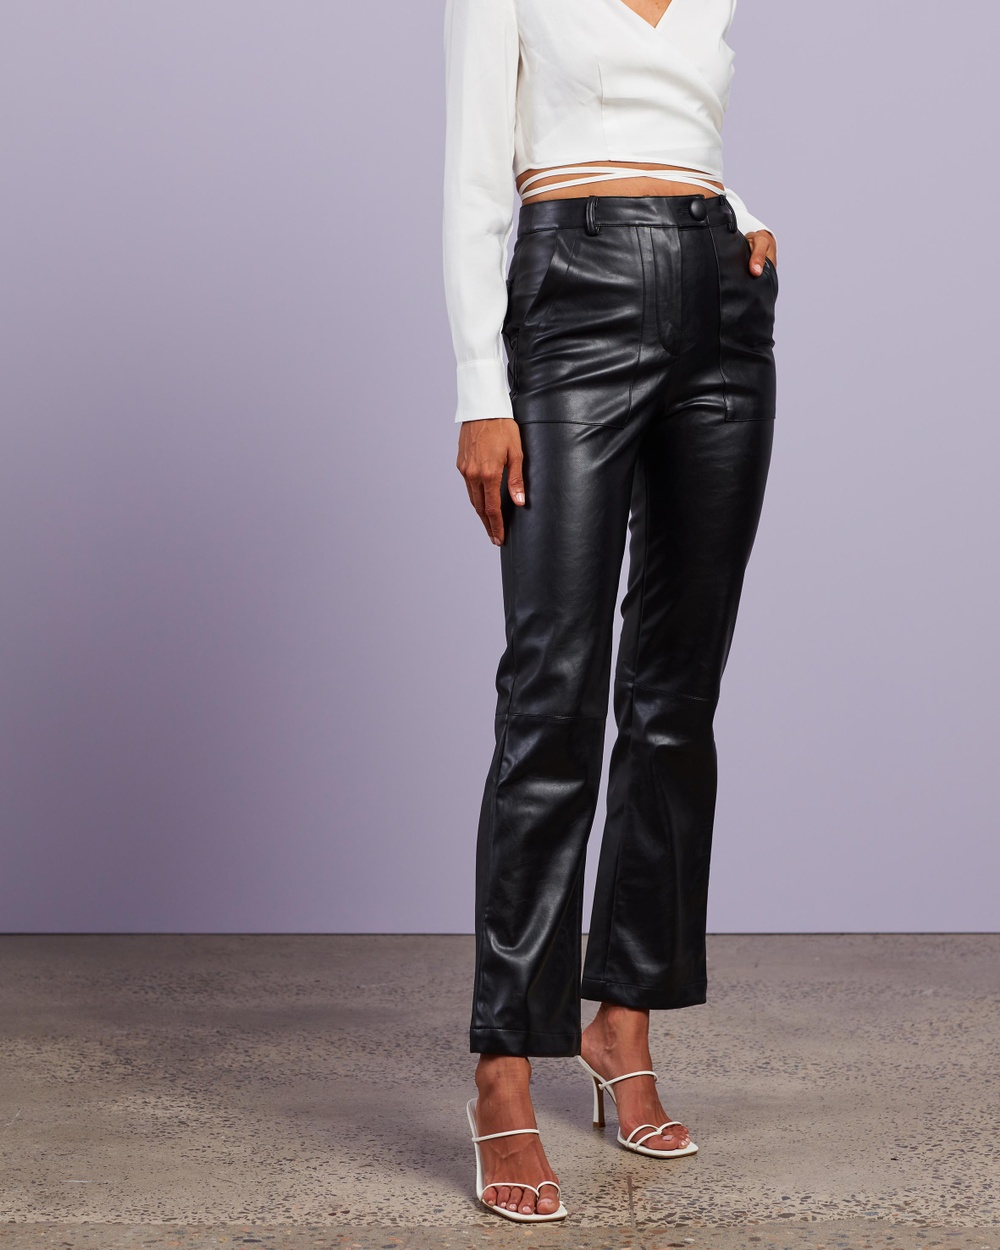 4th & Reckless Kayden Trousers Pants Black